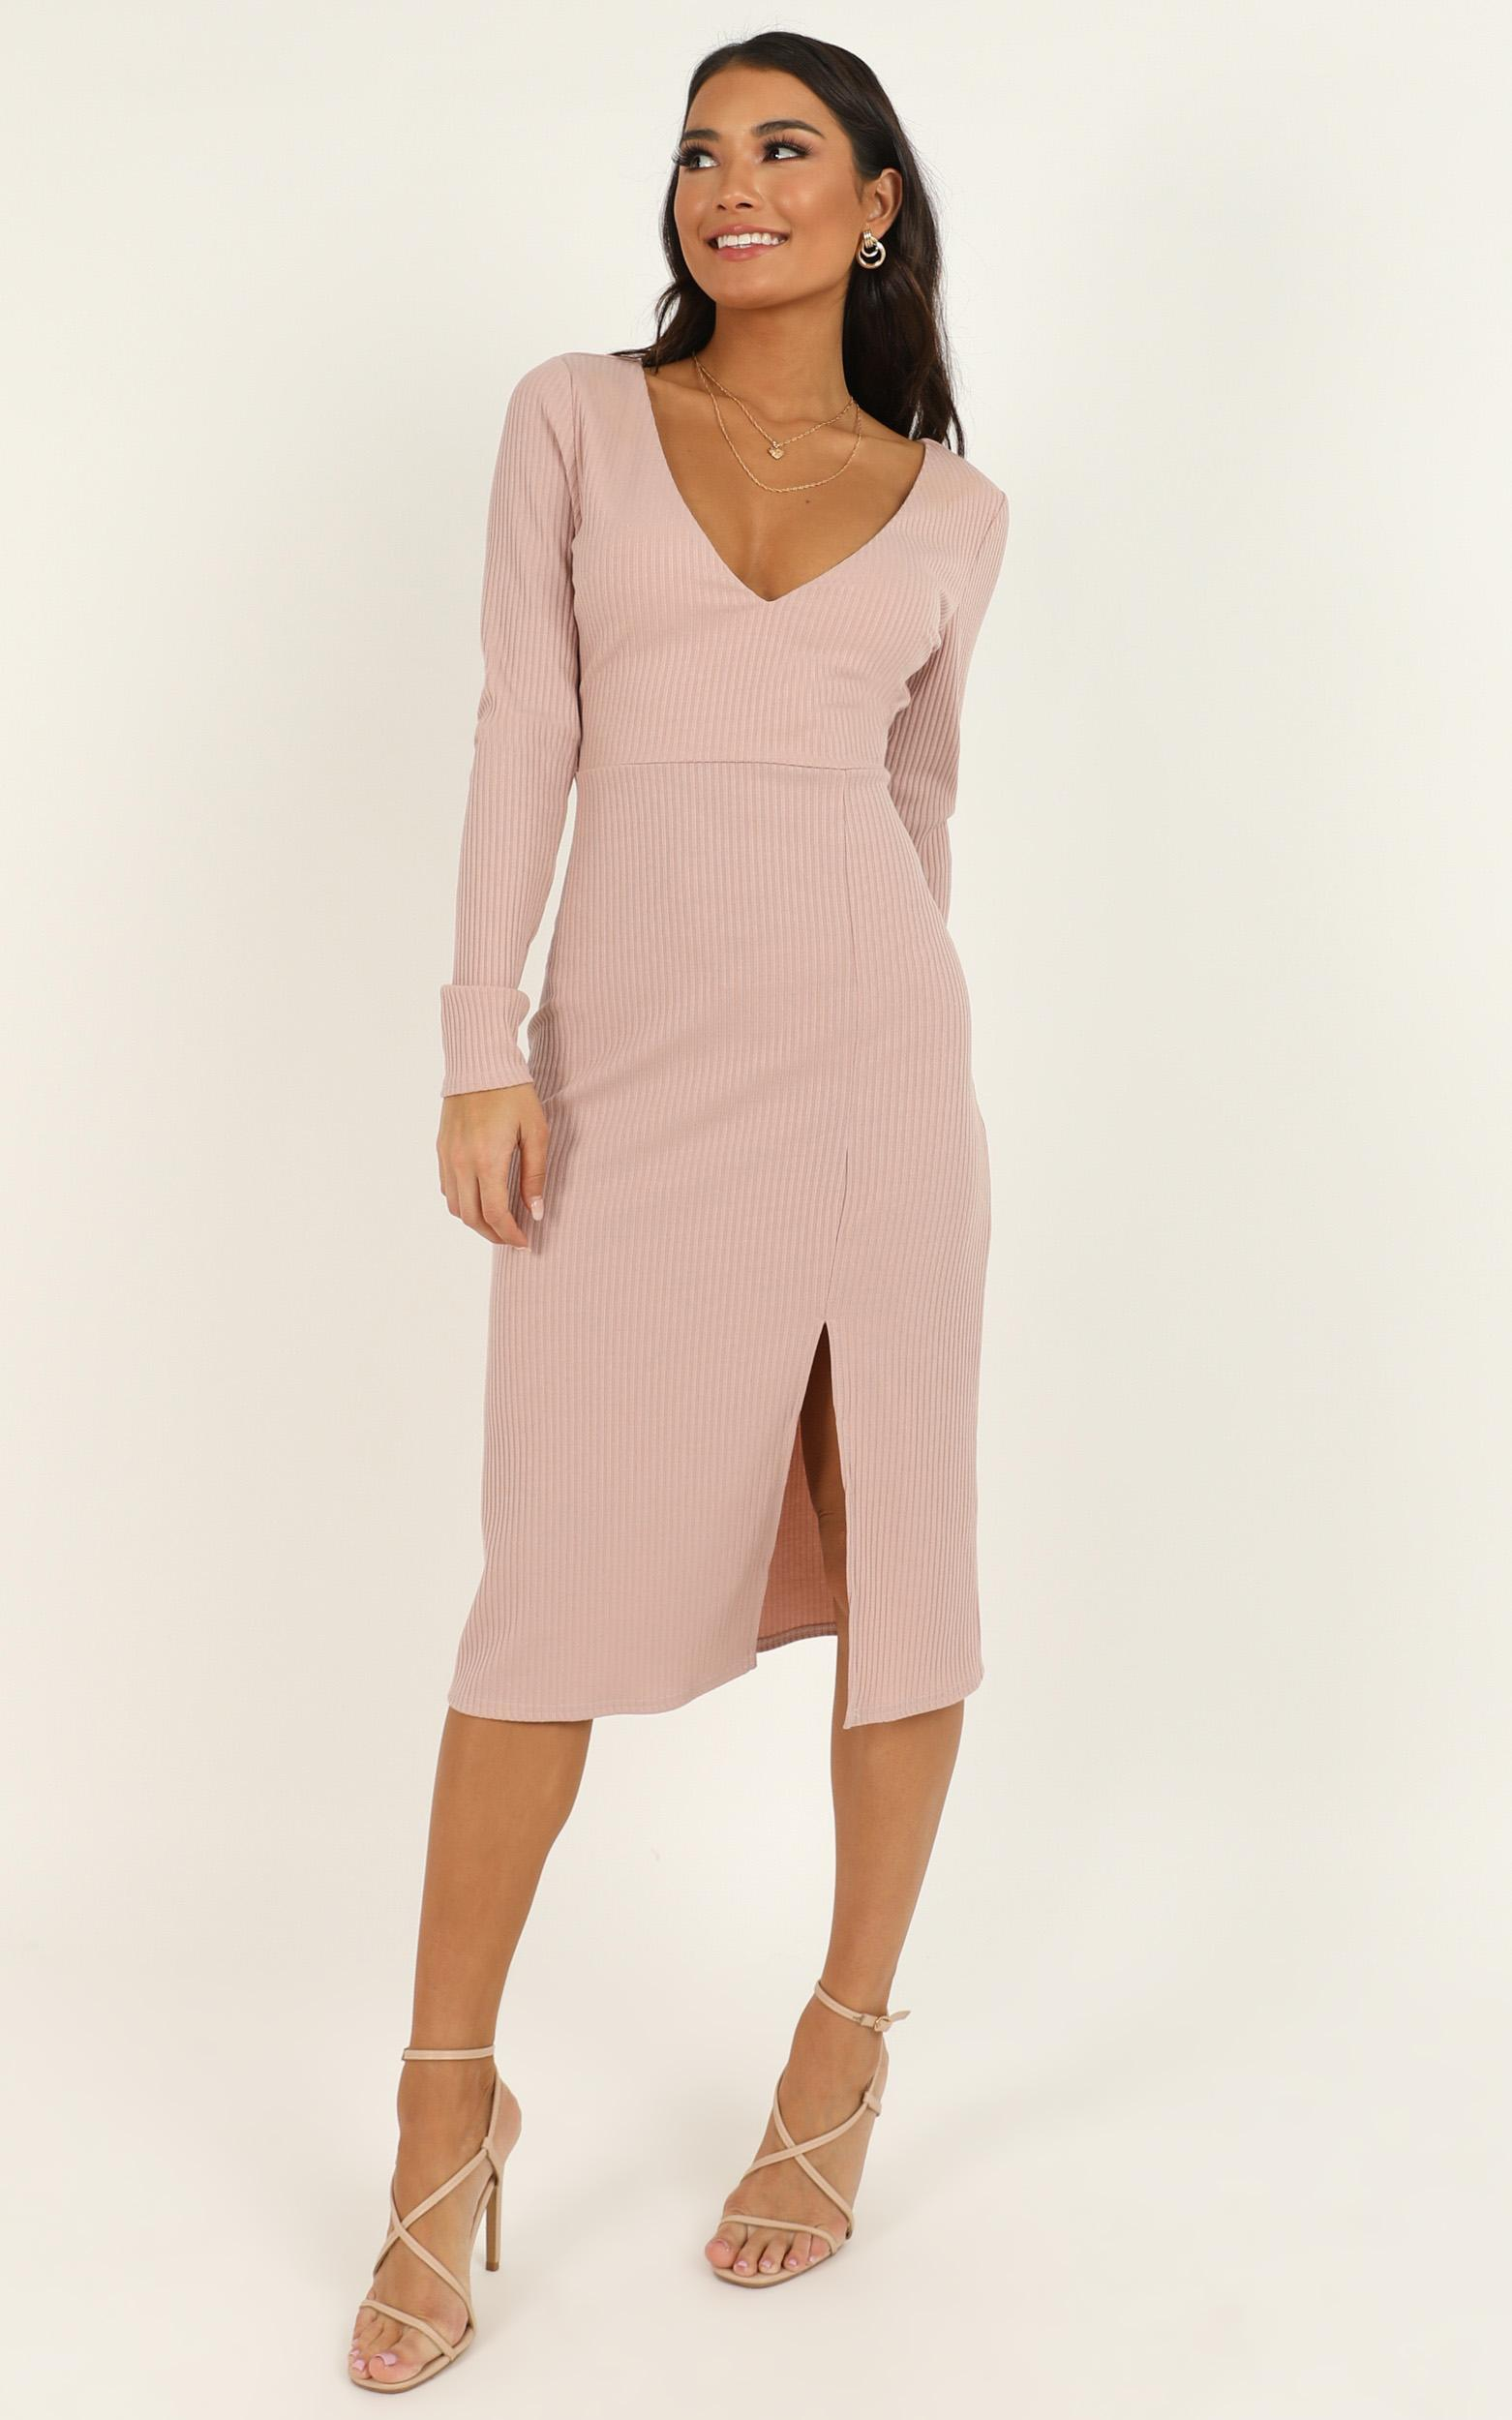 Clone Me dress in blush - 20 (XXXXL), Blush, hi-res image number null